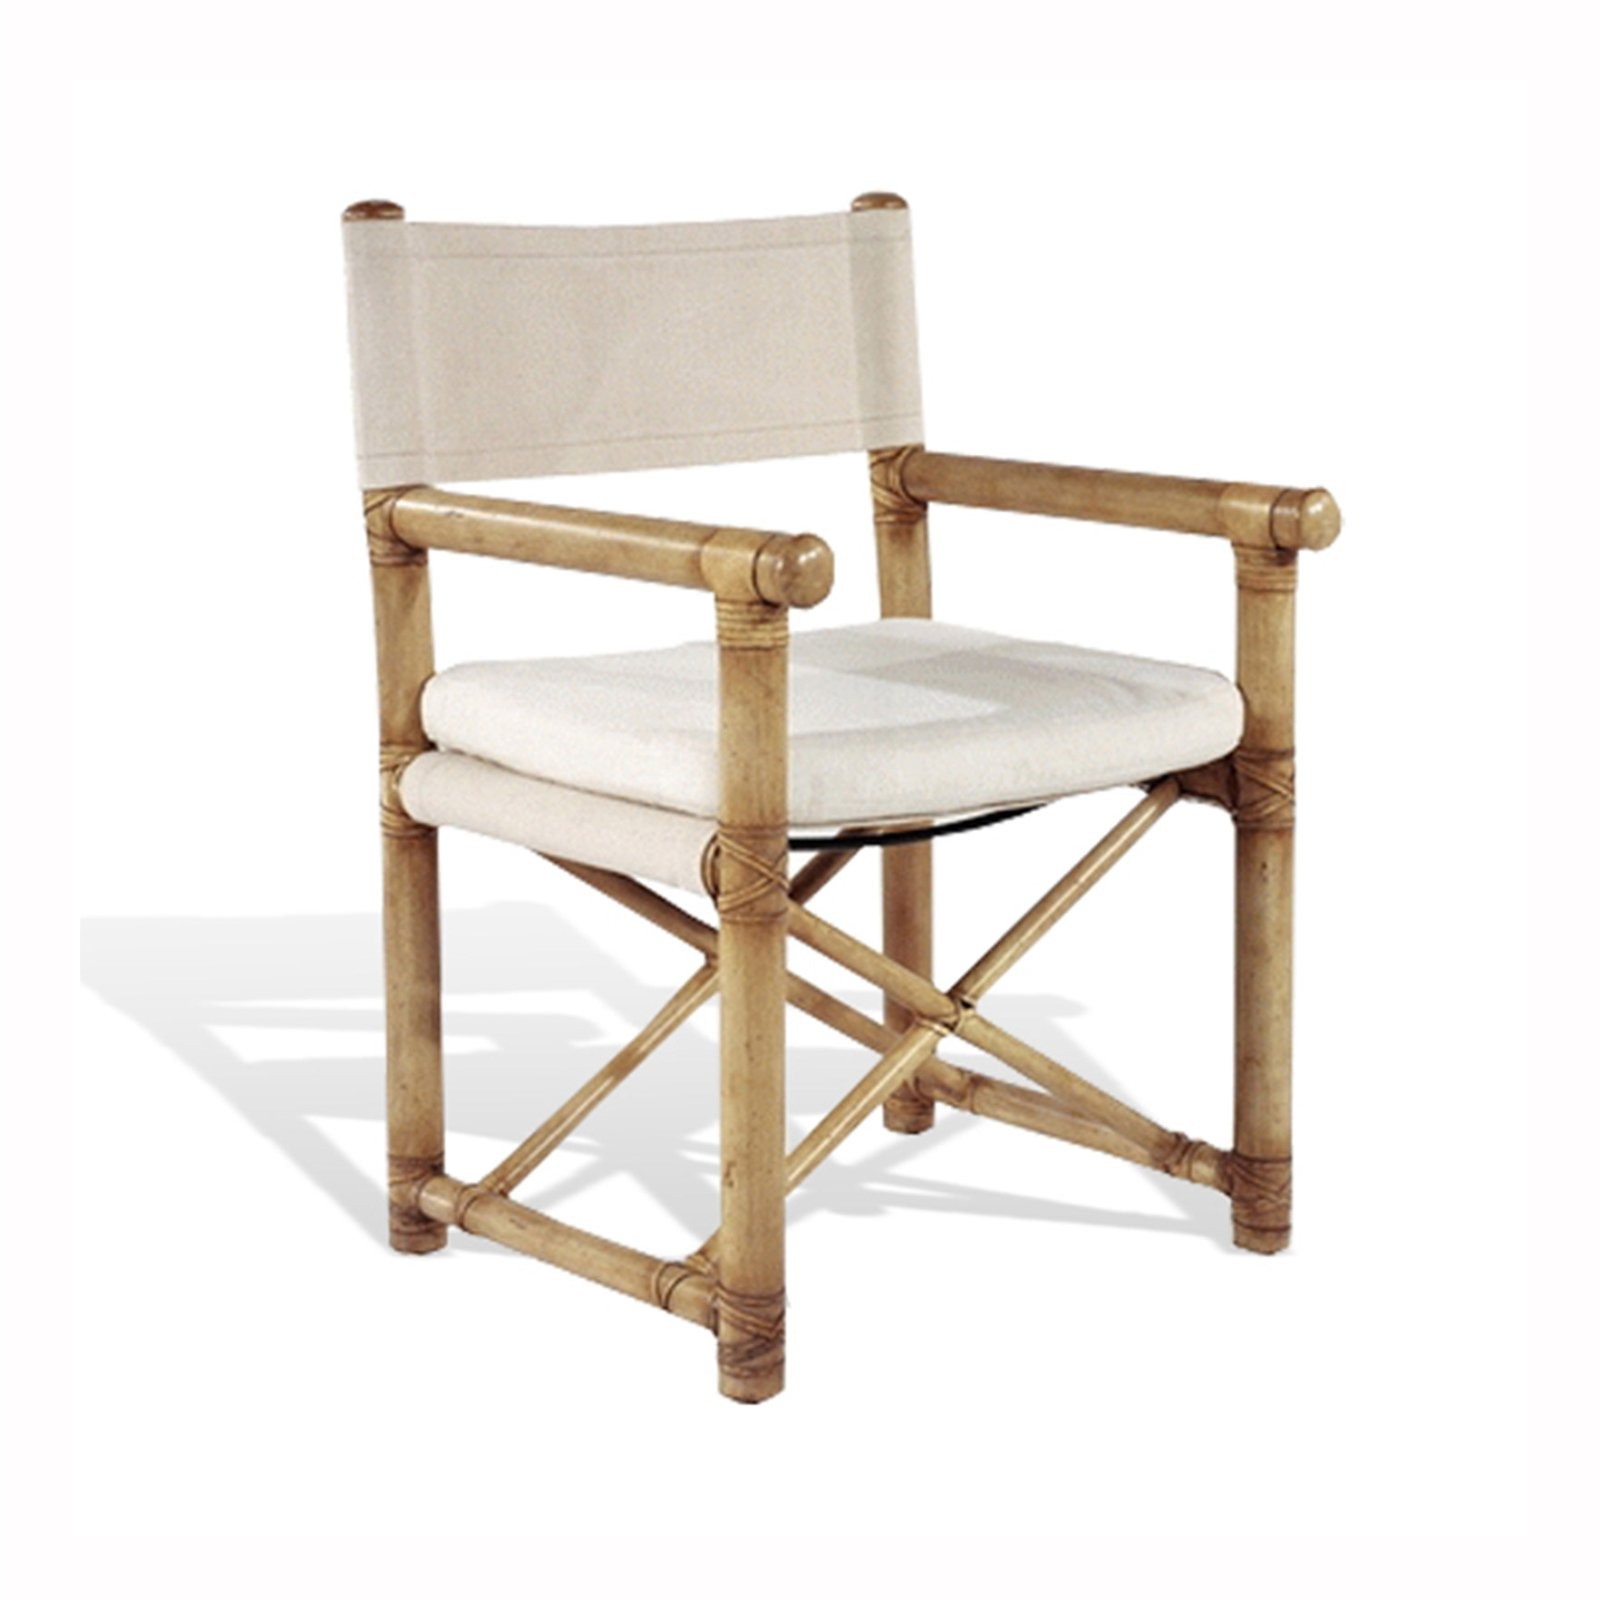 FAUX BAMBOO DIRECTORS CHAIR - STUART MEMBERY HOME COLLECTION